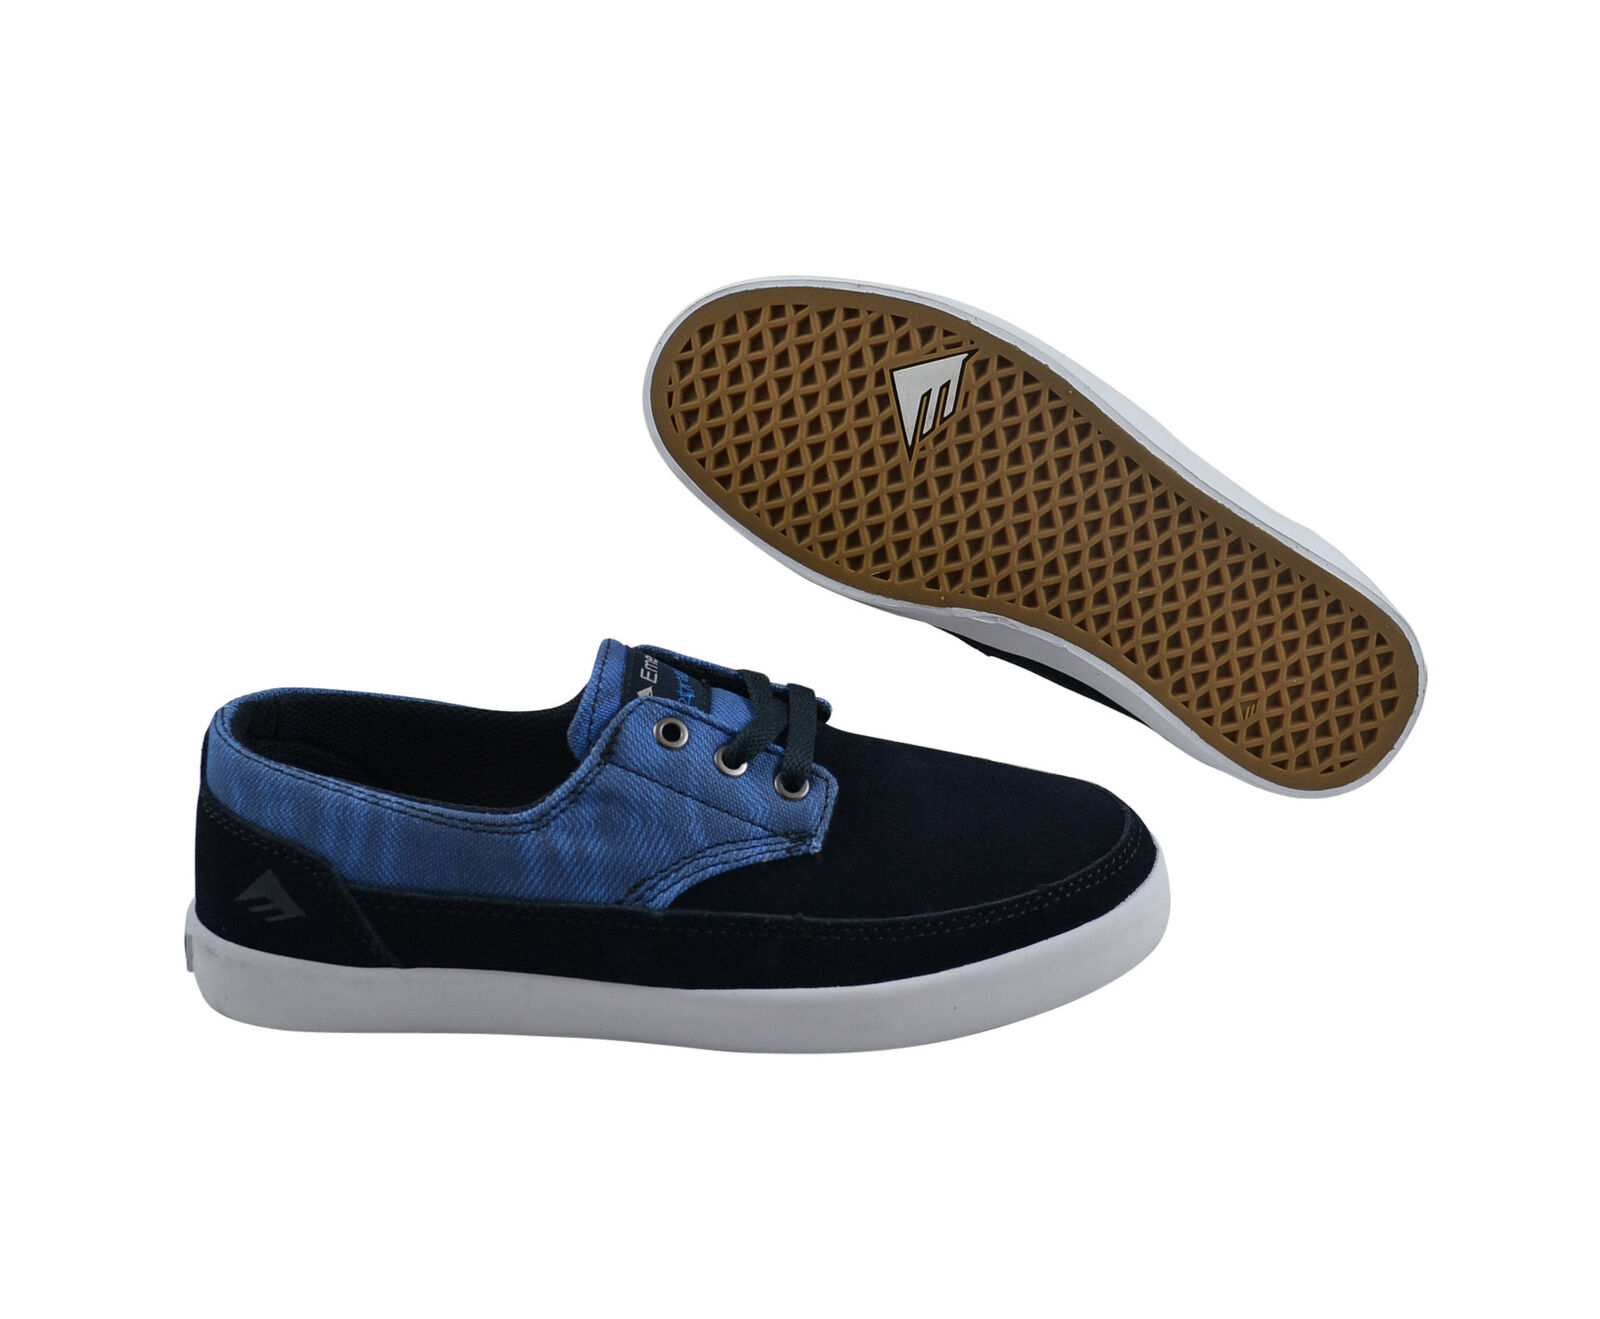 Emerica Low Troubadour Low Emerica navy/Blau Skater Sneaker/Schuhe blau d3373f